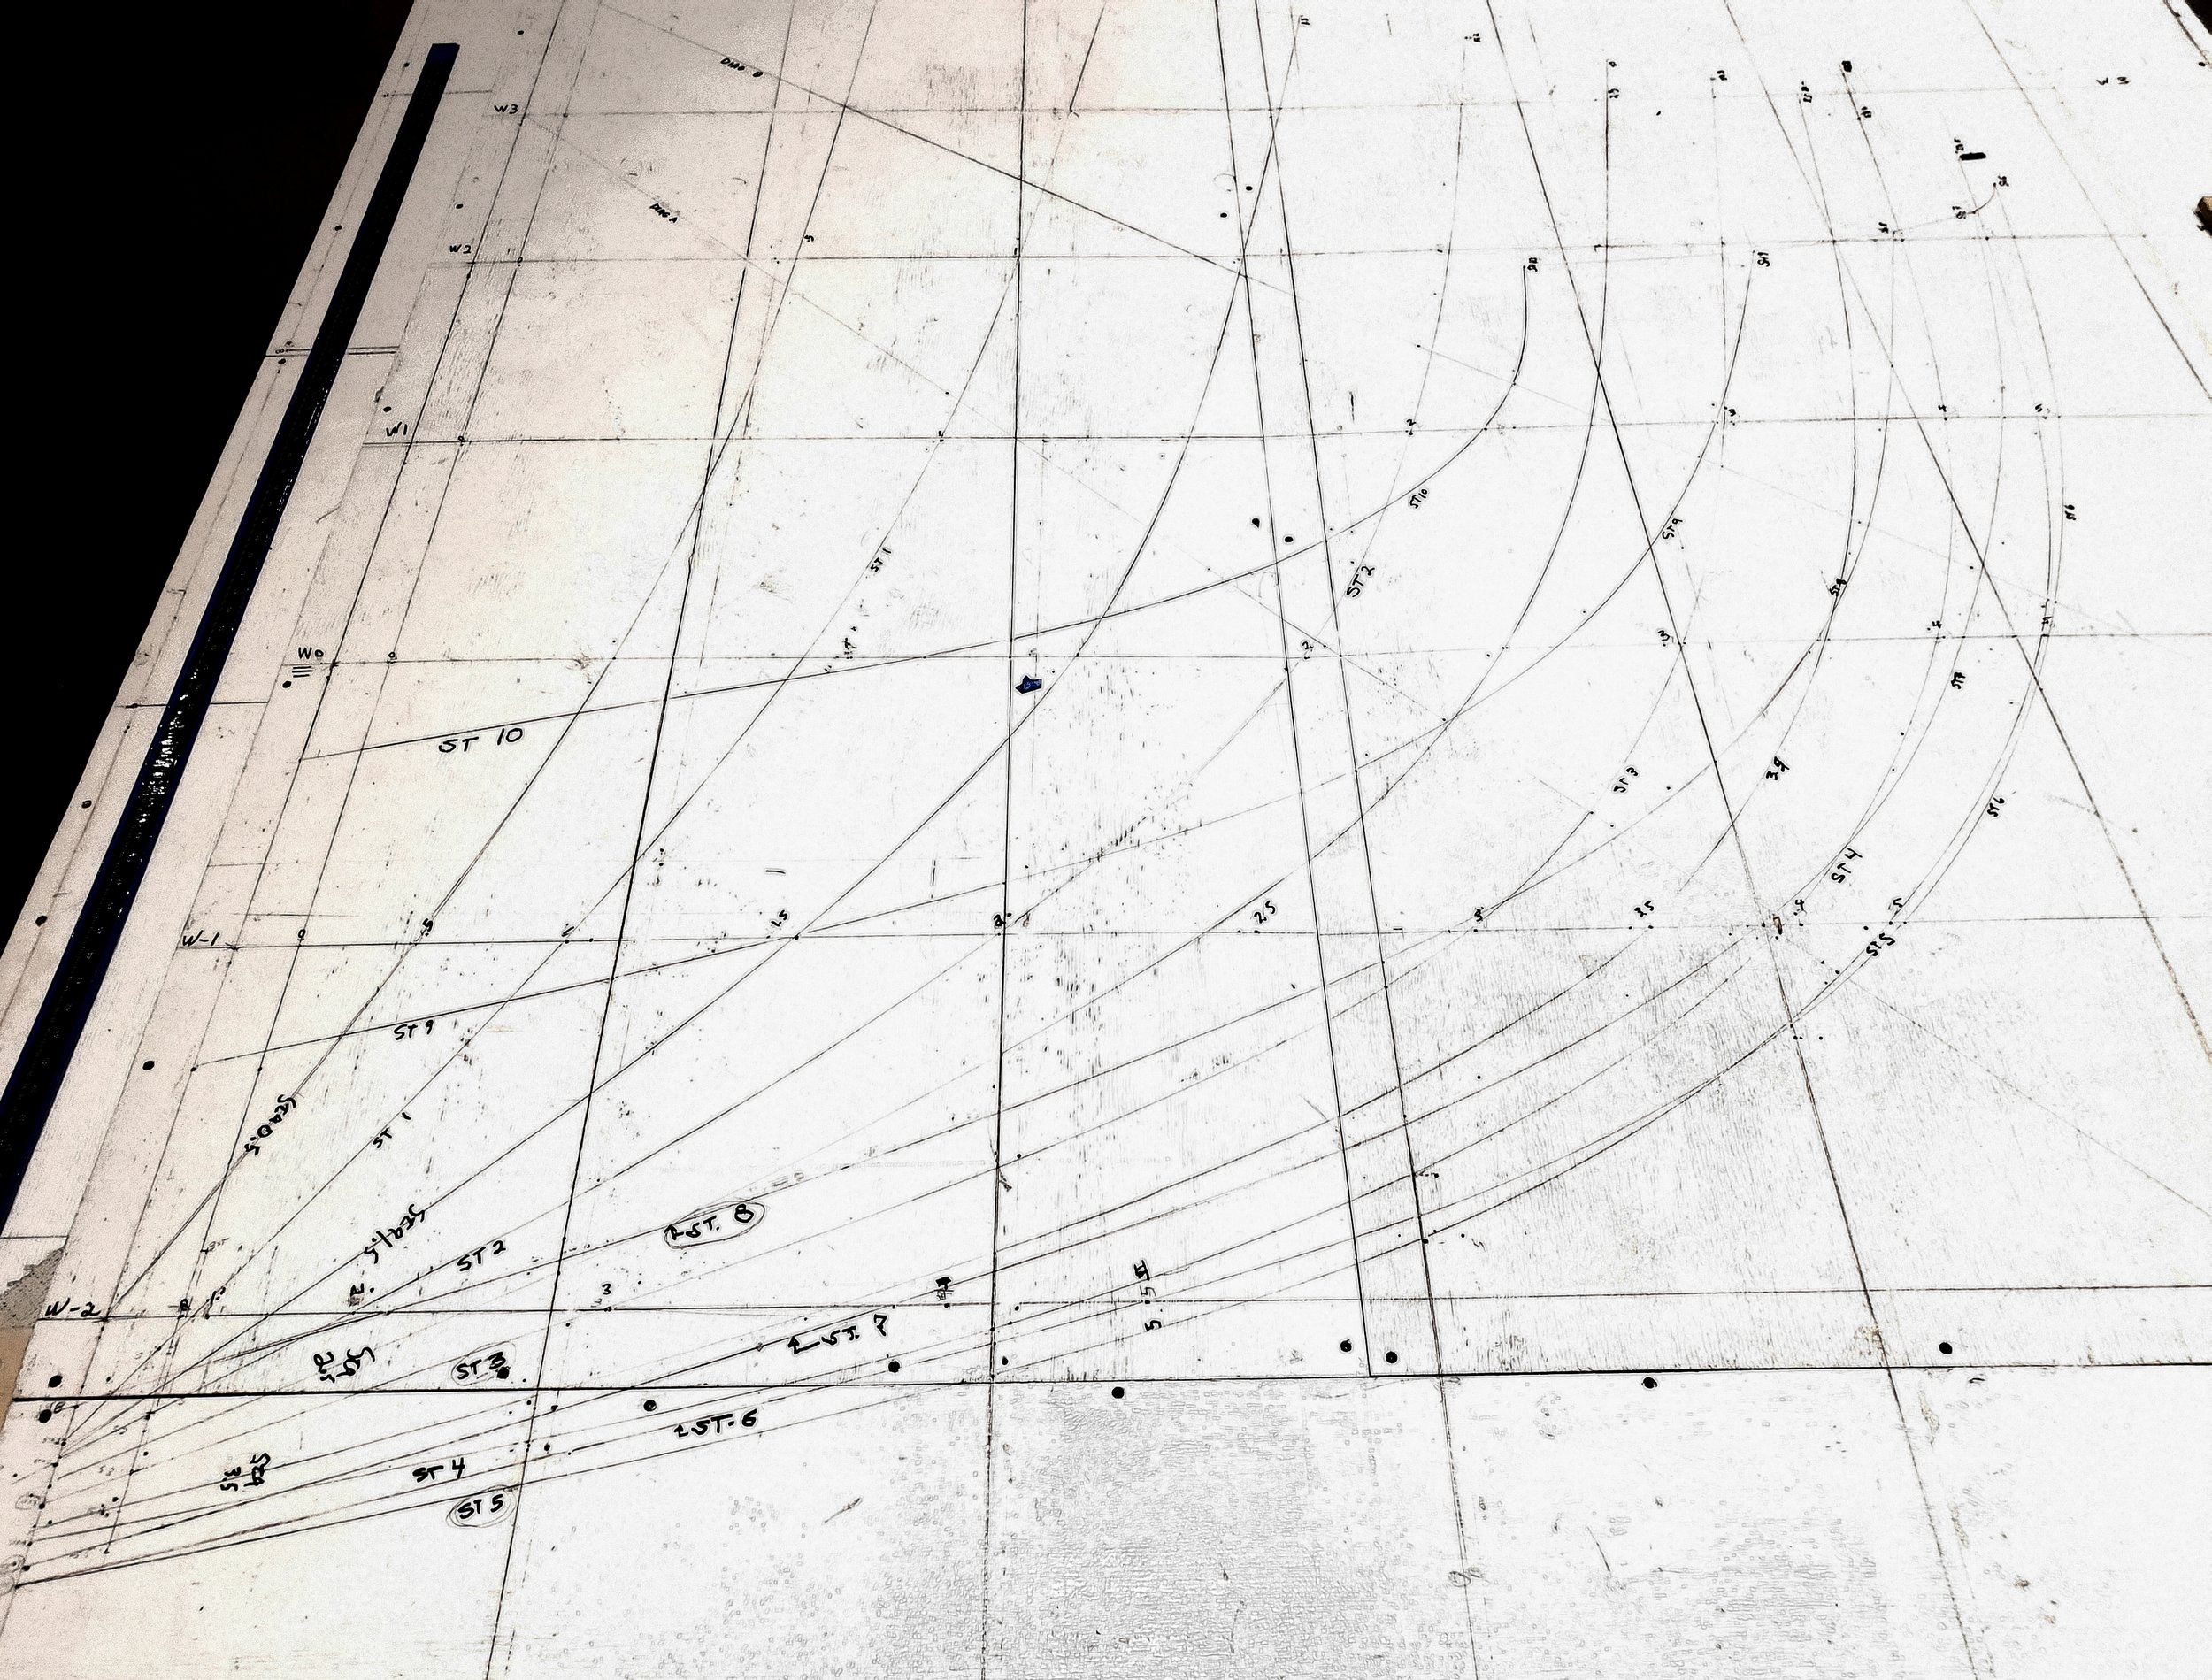 Our waterlines are horizontal with the buttocks running perpendicular and parallel to the center line. Our heights and half-breadths are then plotted where they intersect or land on these lines. A batten, which is a thin, flexible piece of wood or plastic is pushed against awls or nails at these measurements enabling us to create and draw a fair curve.